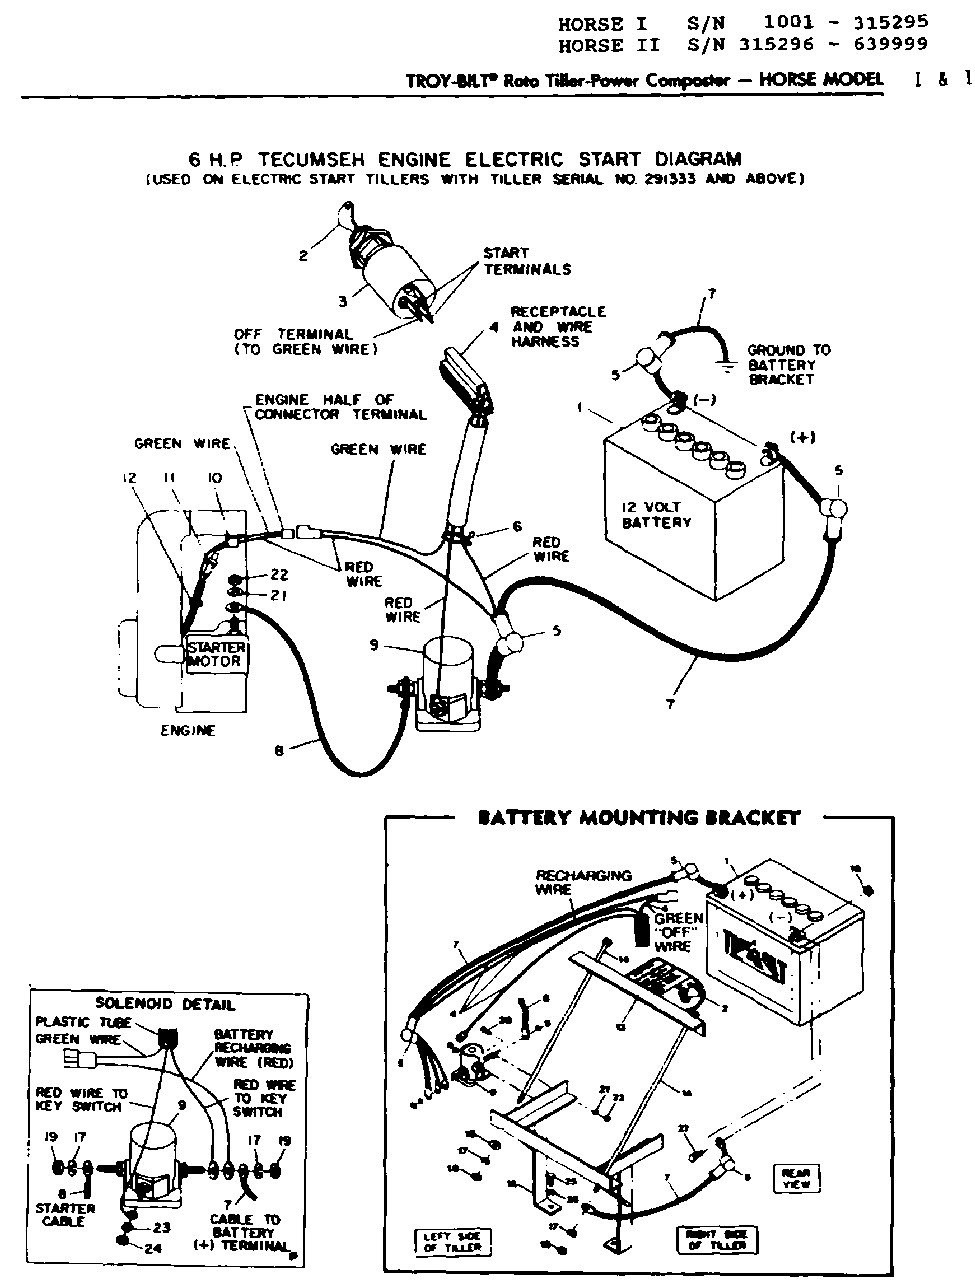 tecumseh ignition coil diagram electrical work wiring diagram u2022 rh wiringdiagramshop today 1992 Yamaha G9 Wiring Schematic Magneto Wiring Schematic Wu Pin